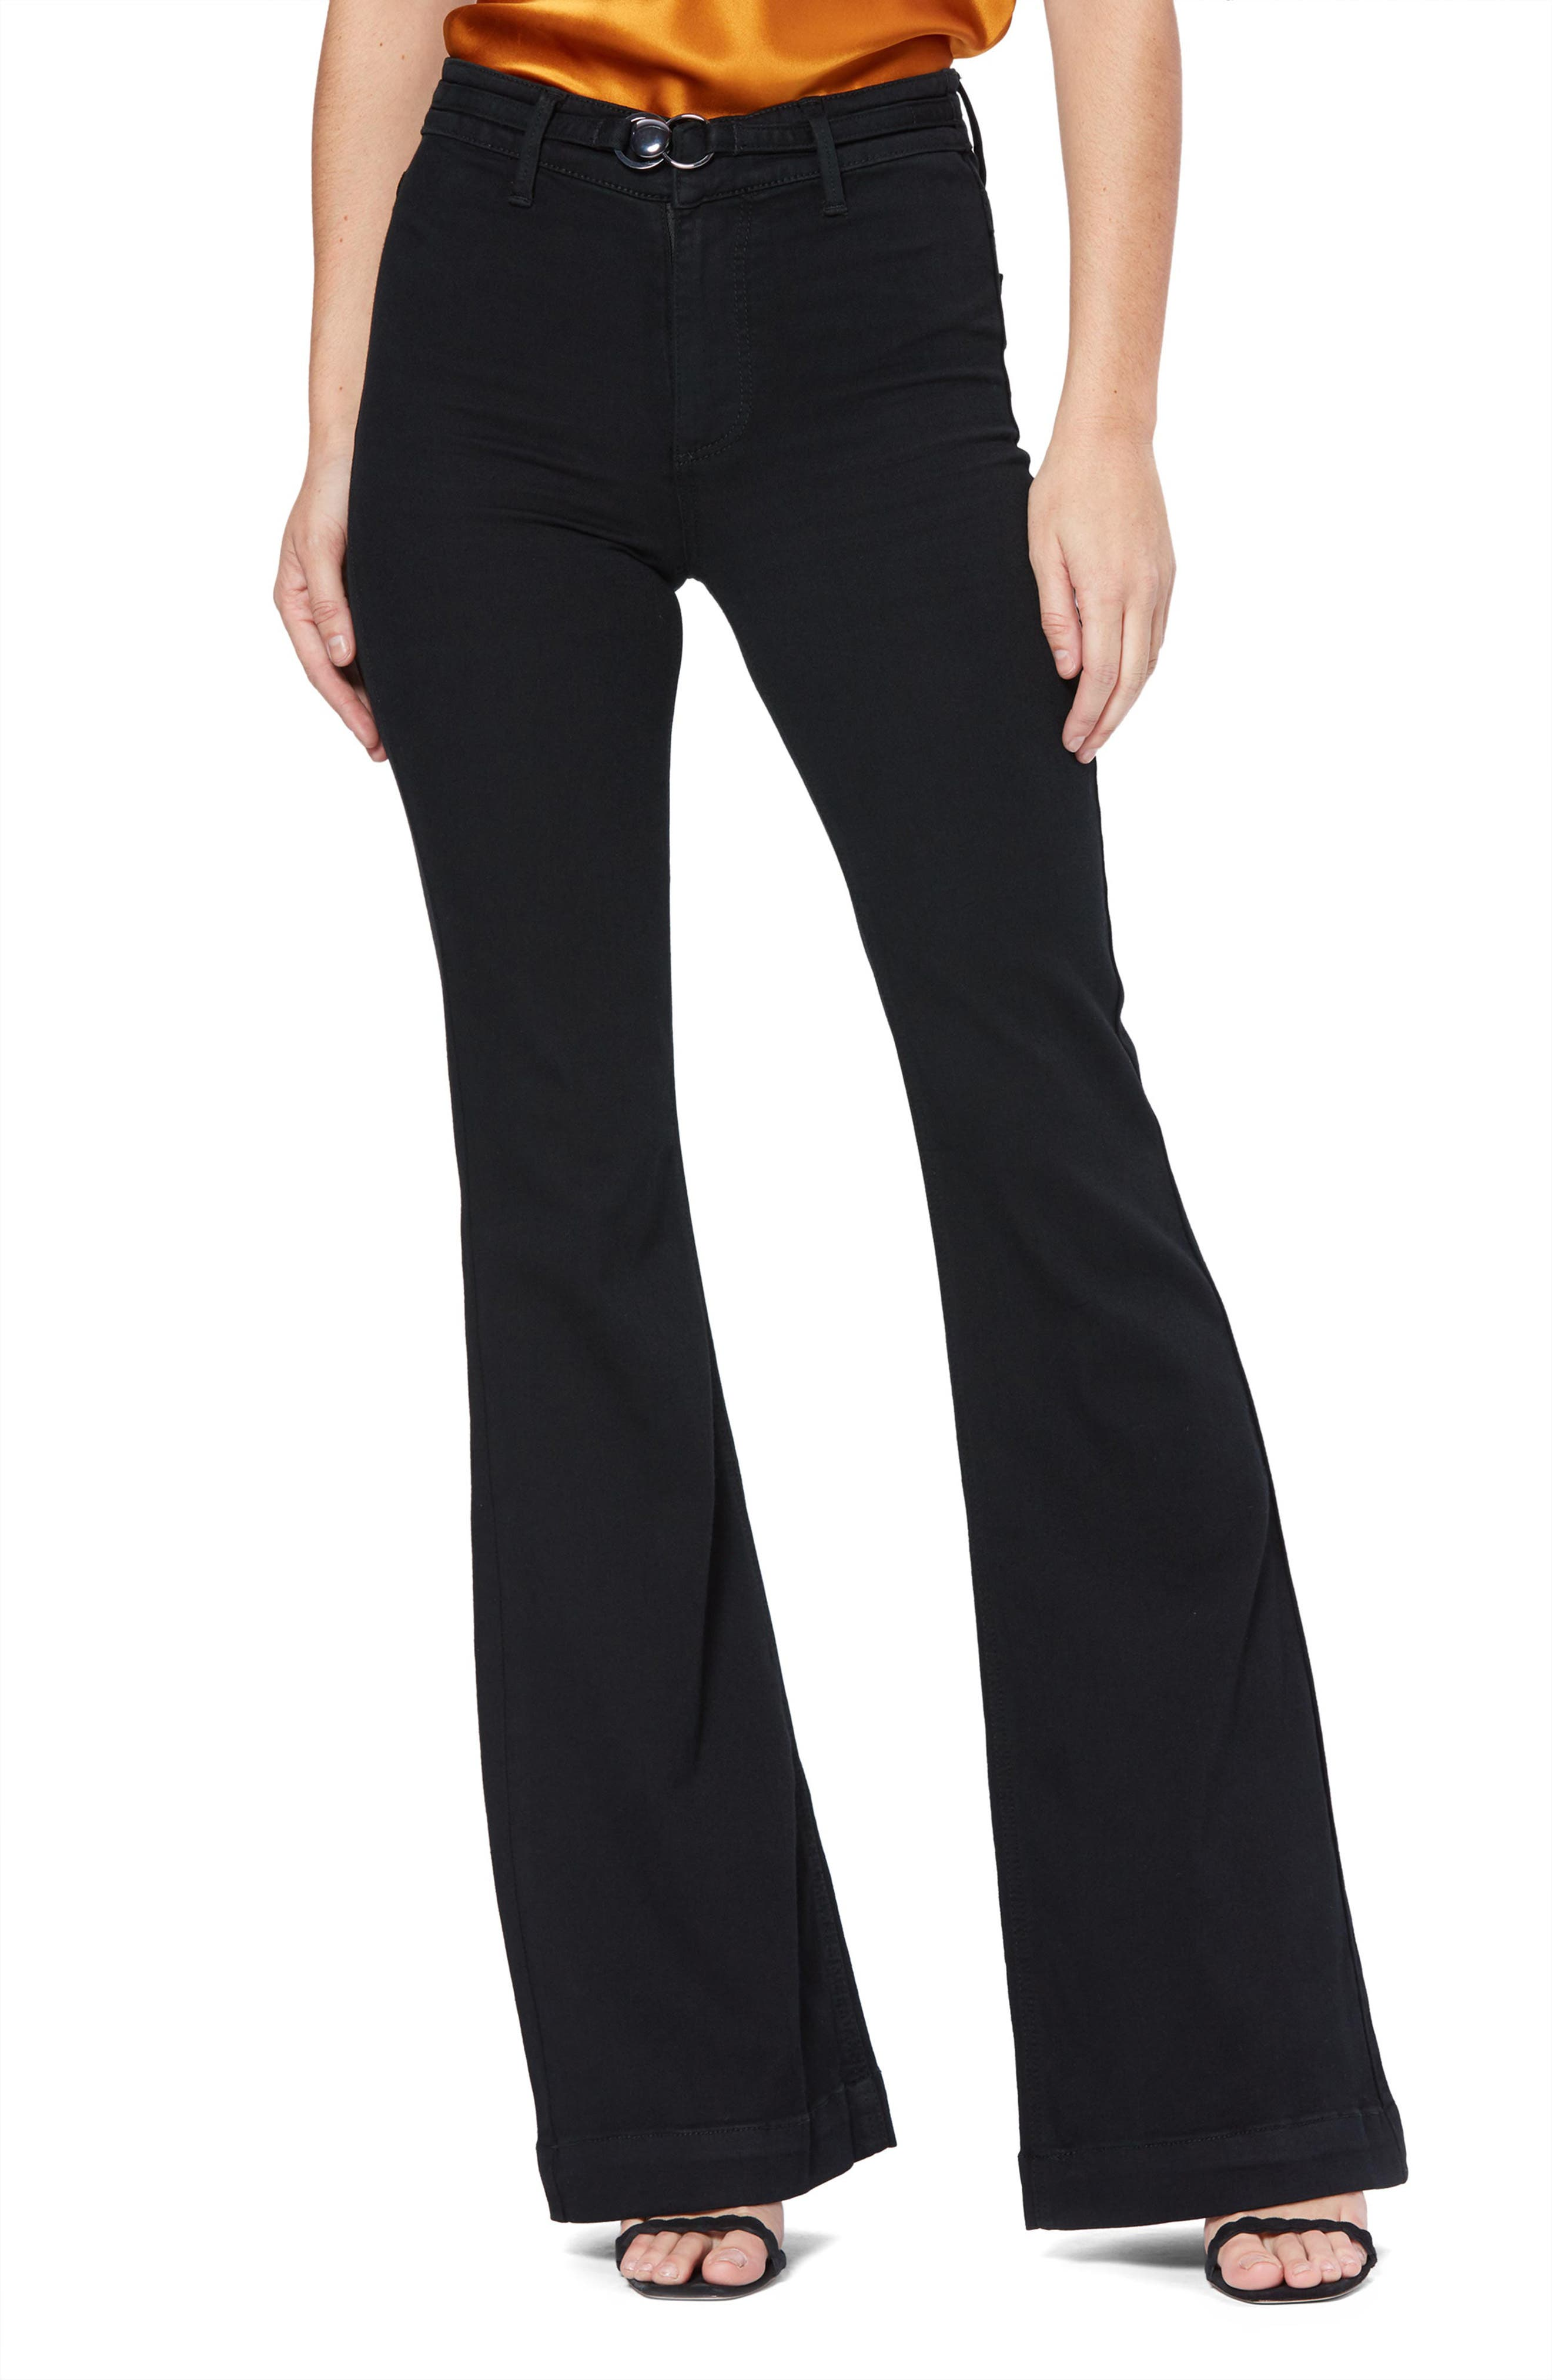 Women's Paige Transcend Genevieve High Rise Buckle Flare Jeans